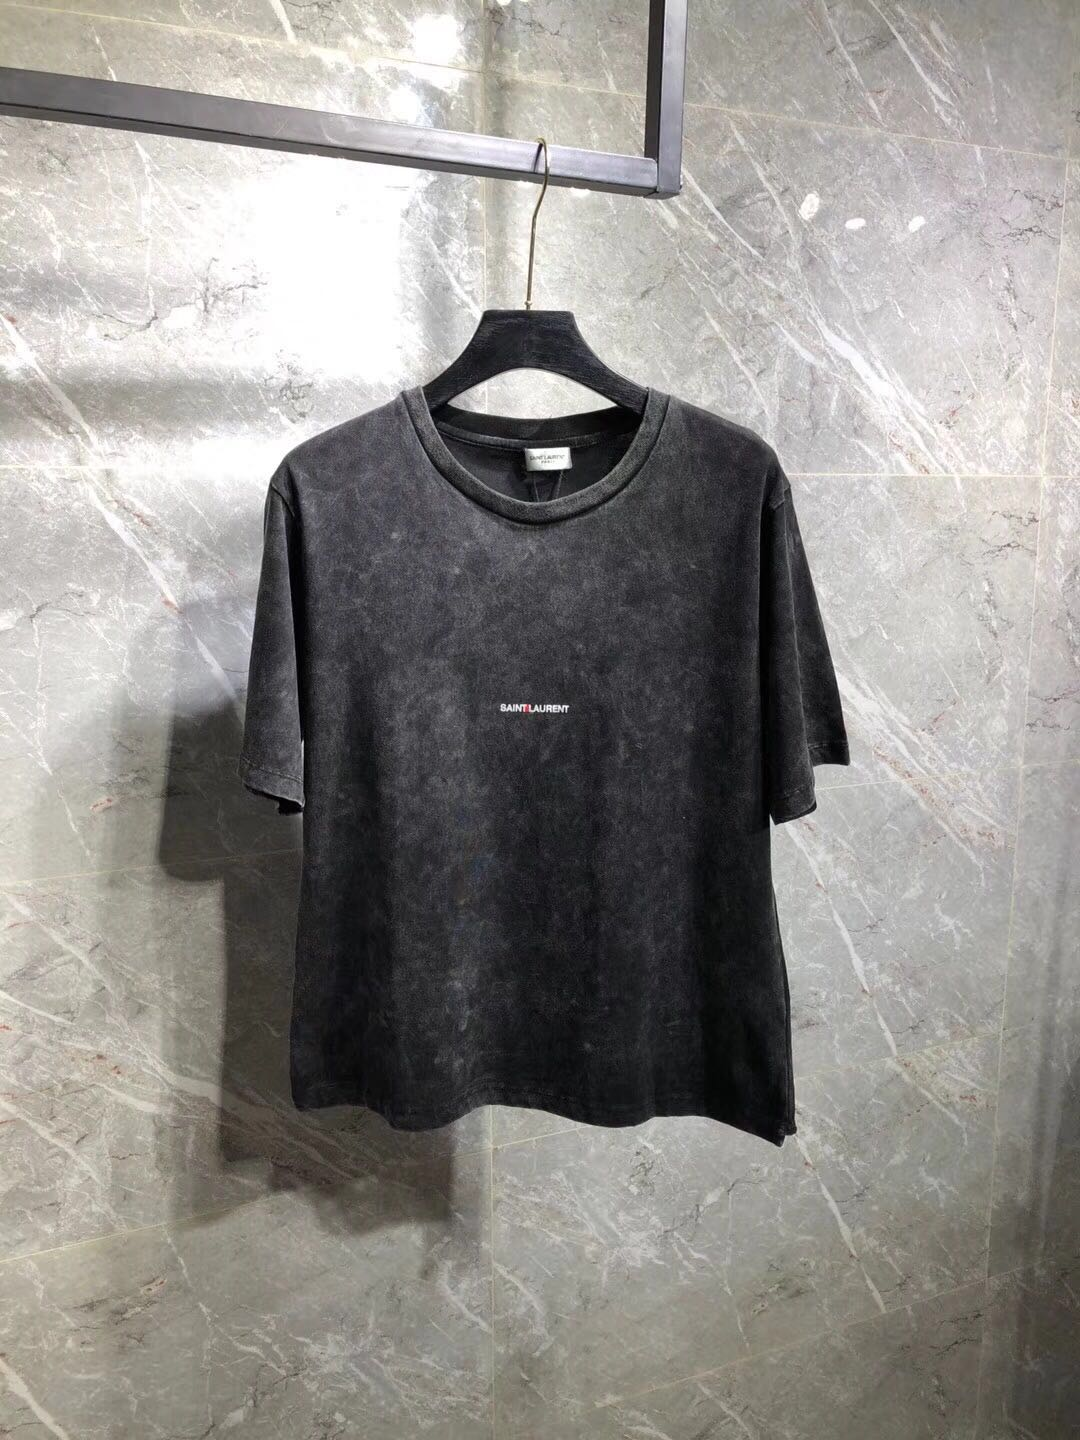 070b0a4f Falection 18ss Saint Laurent Paris Washed Grey small Logo Tshirt Item NO:  543781